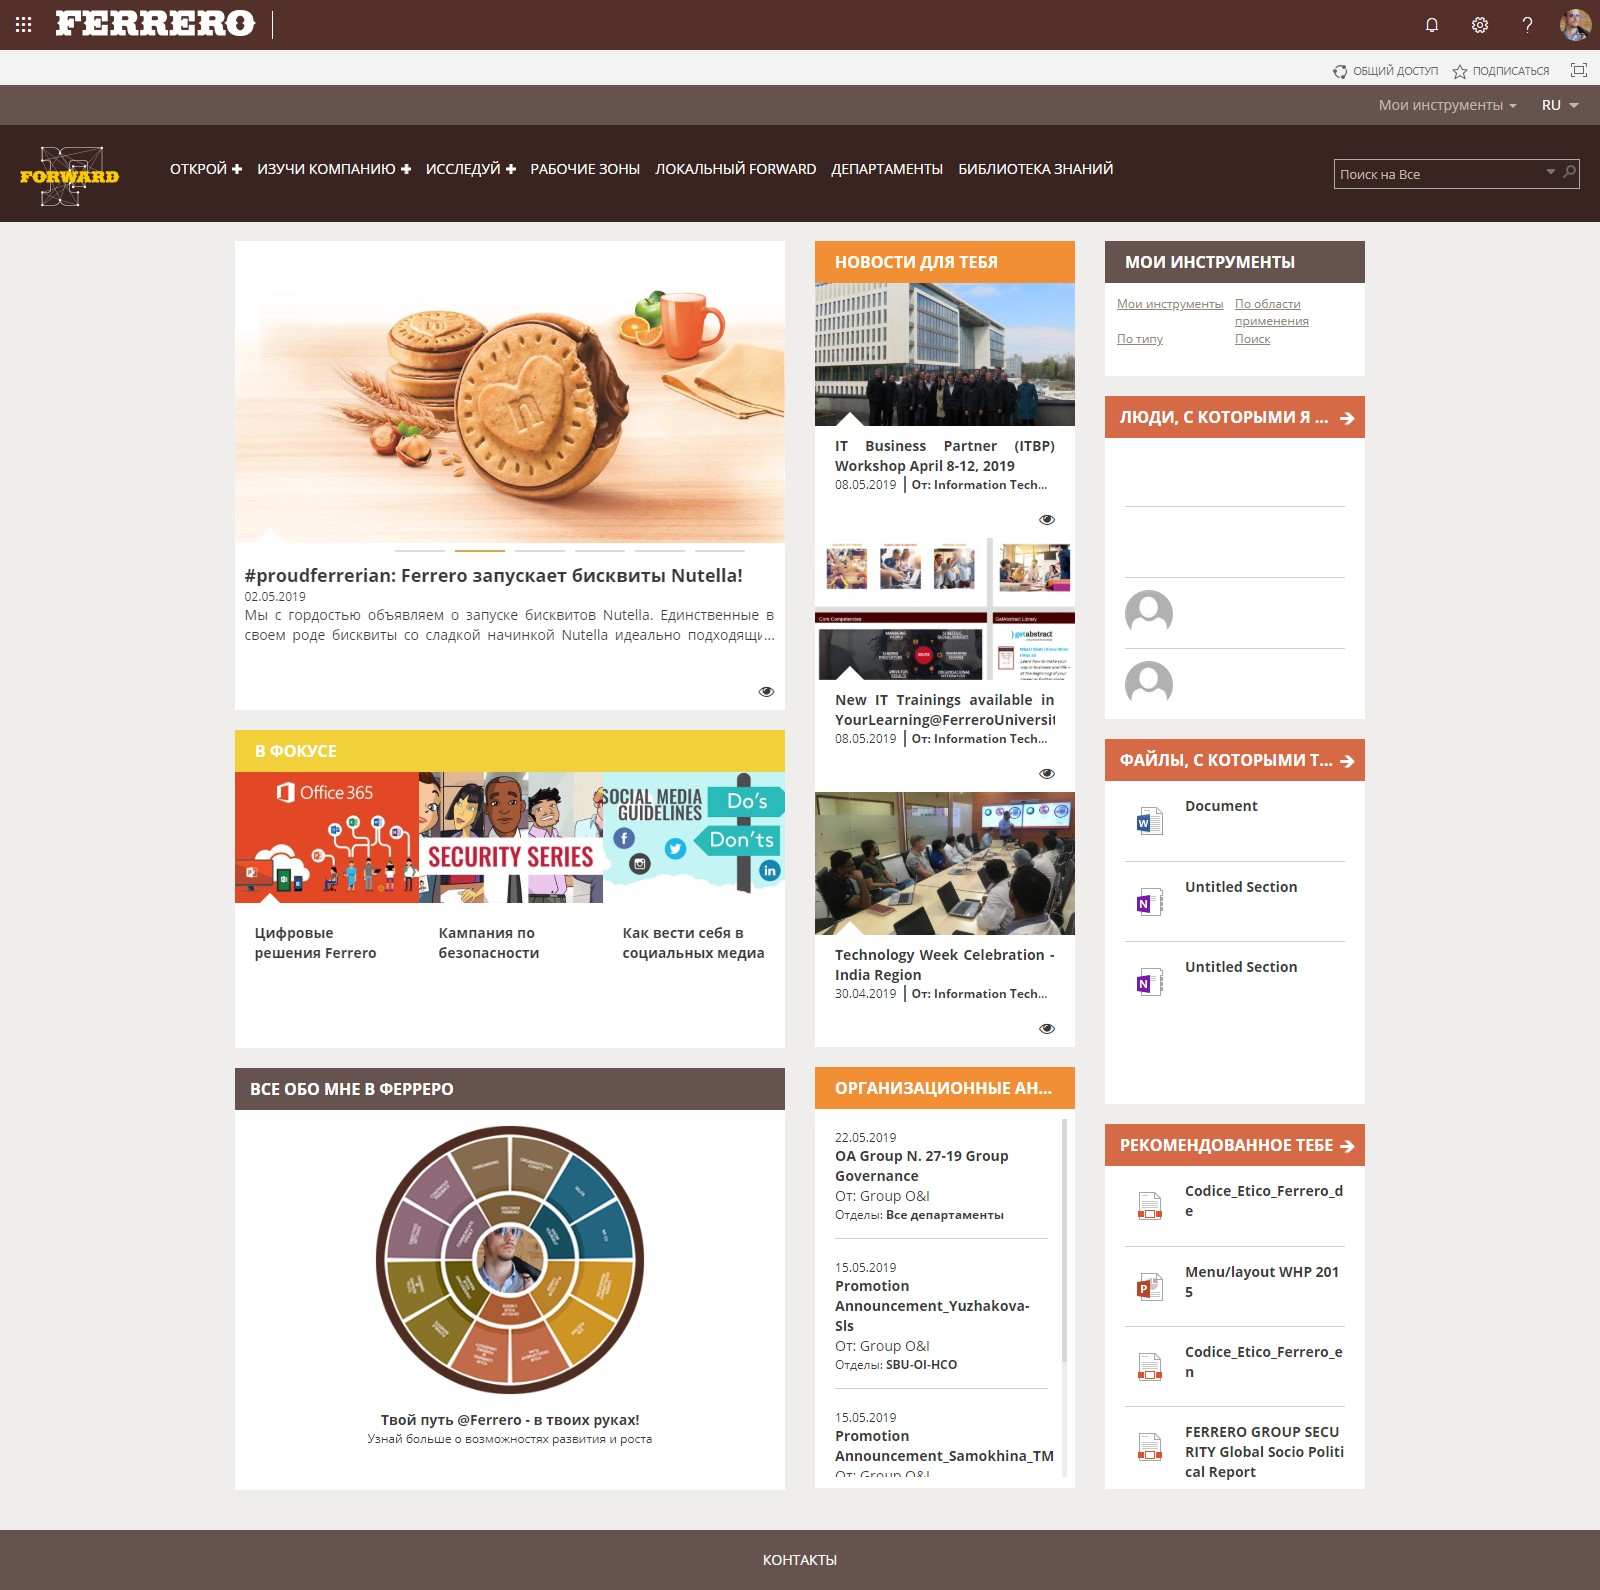 Intranet Ferrero in Russo